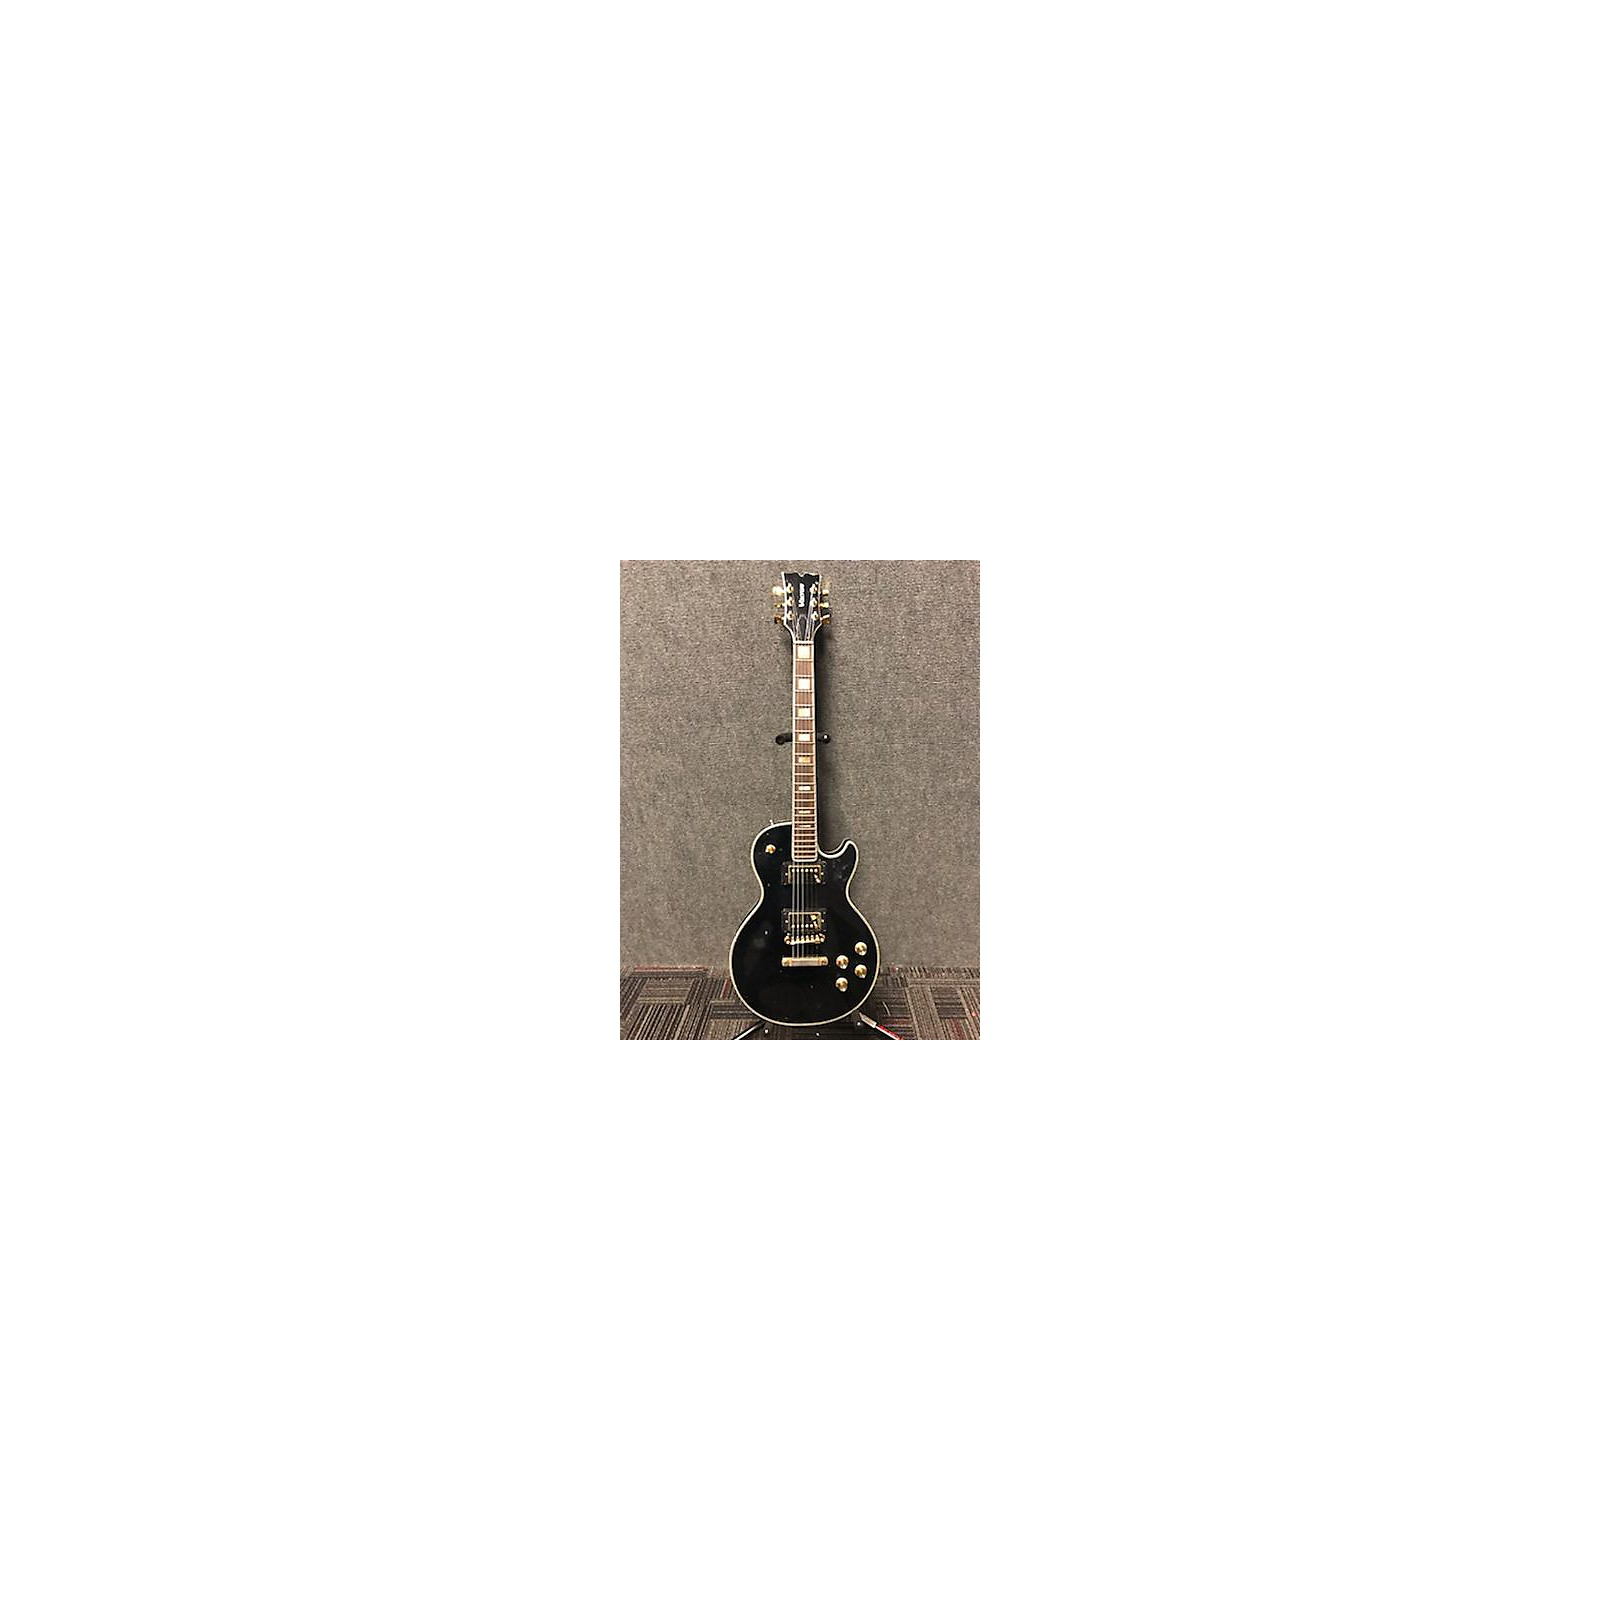 In Store Used Used 1970s VOXTON LP-STYLE Black Solid Body Electric Guitar